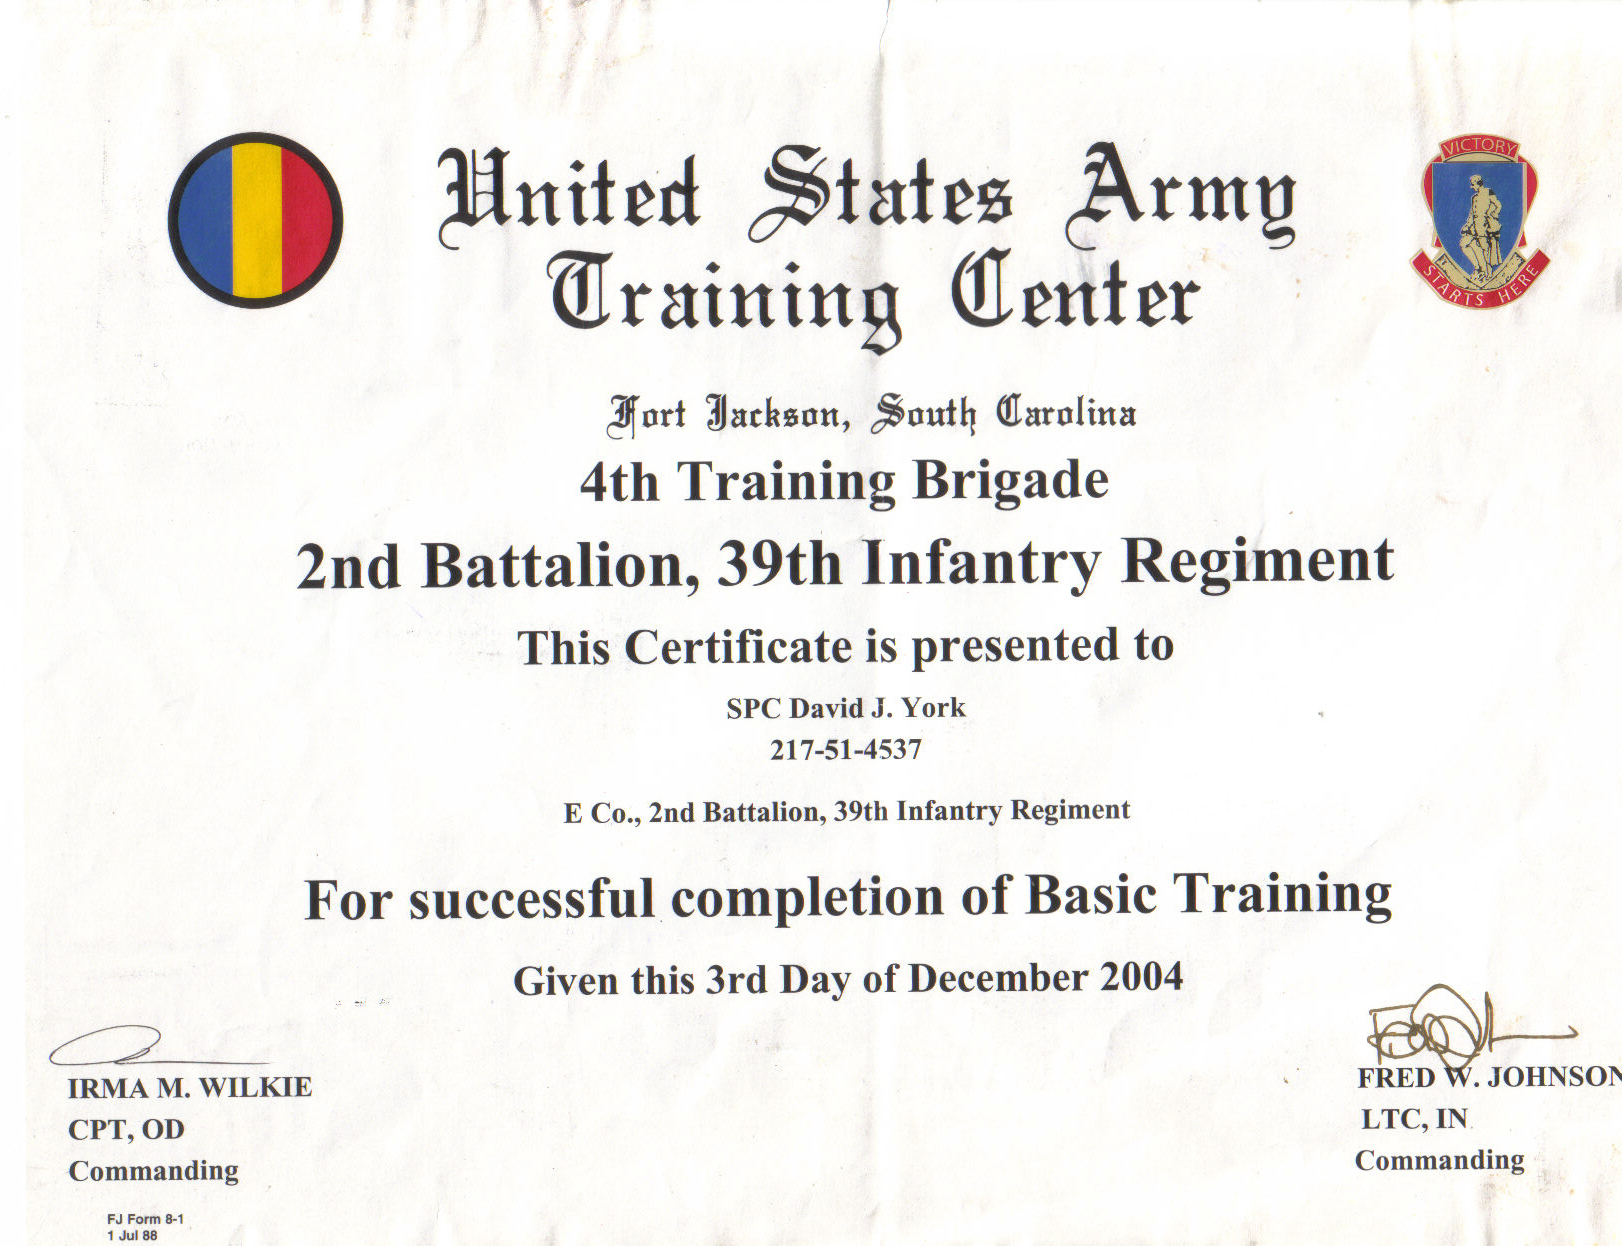 Print photos view full size image for Army certificate of completion template